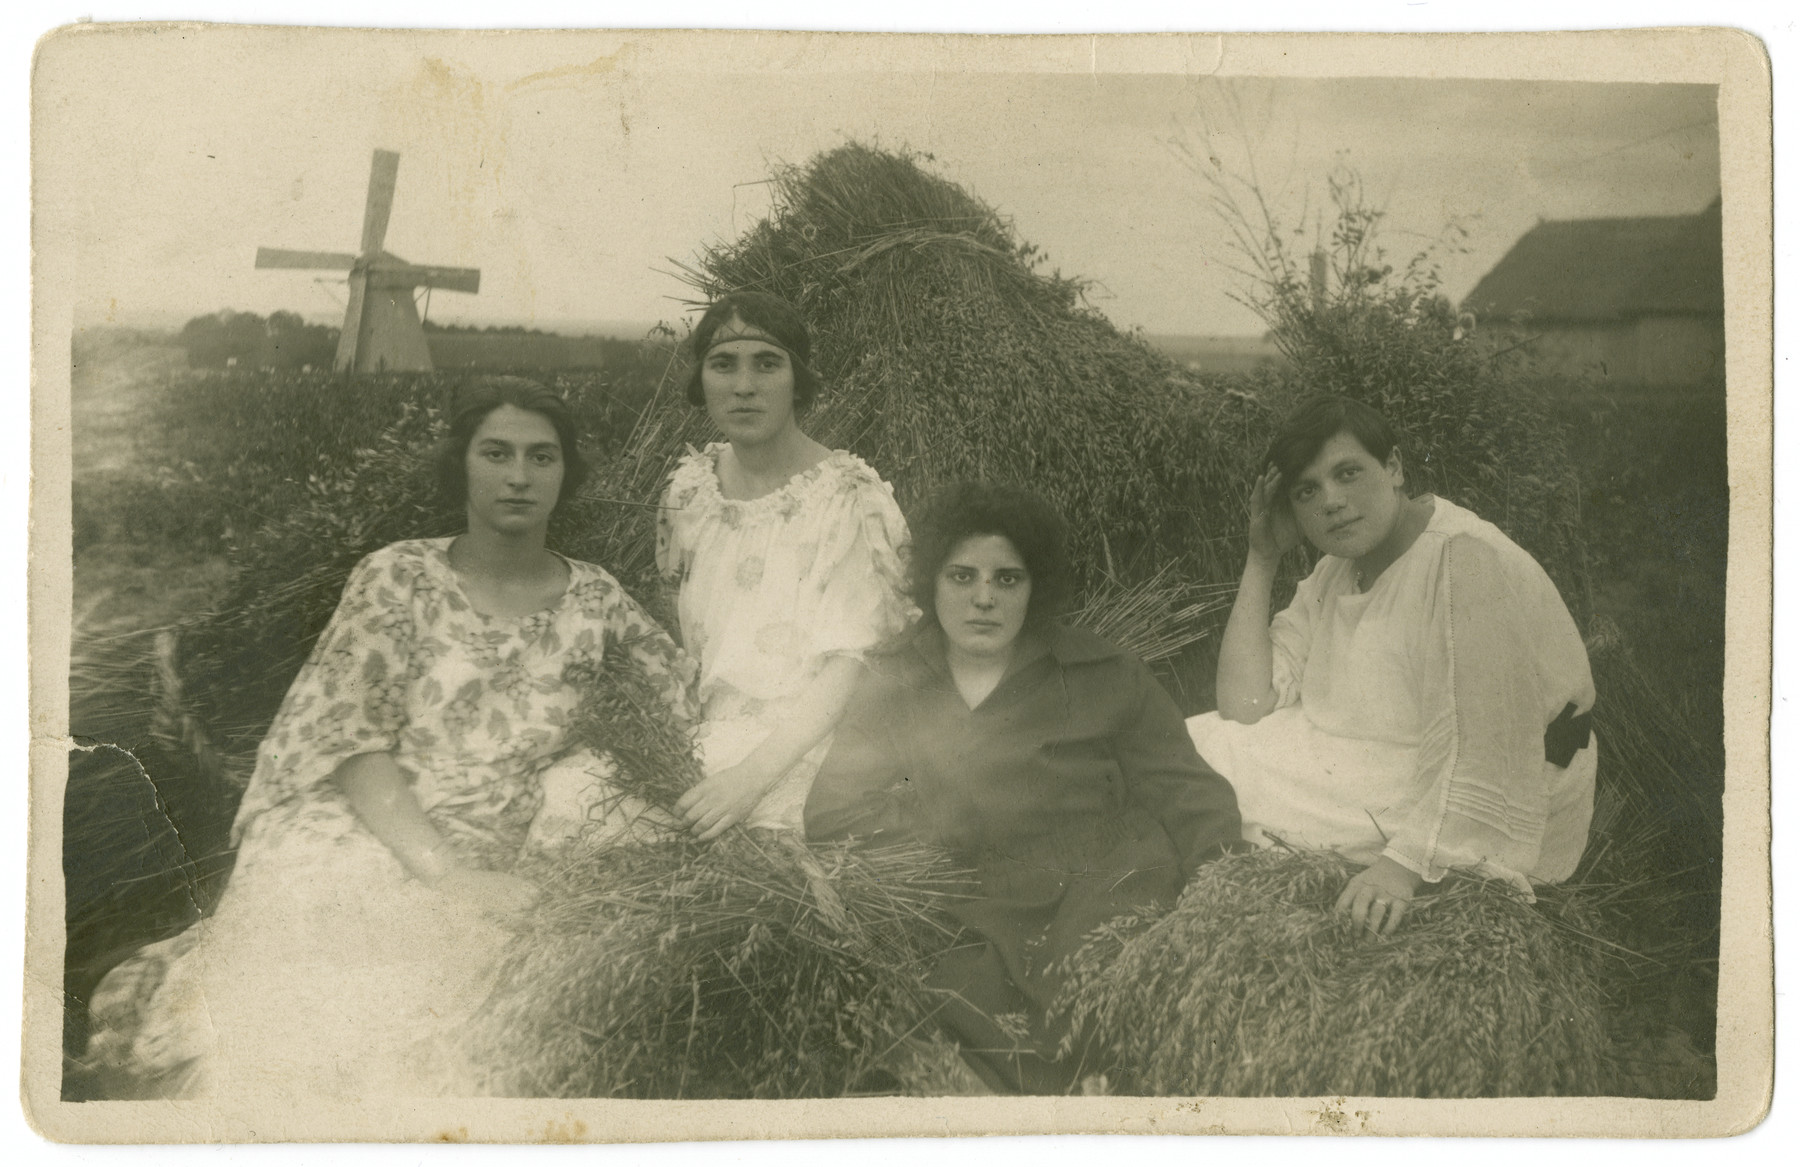 Four young Polish Jewish women sit amidst hay stacks.  Among those pictured are Rochel Katz (far left) and Chana Tykocka (second from left).